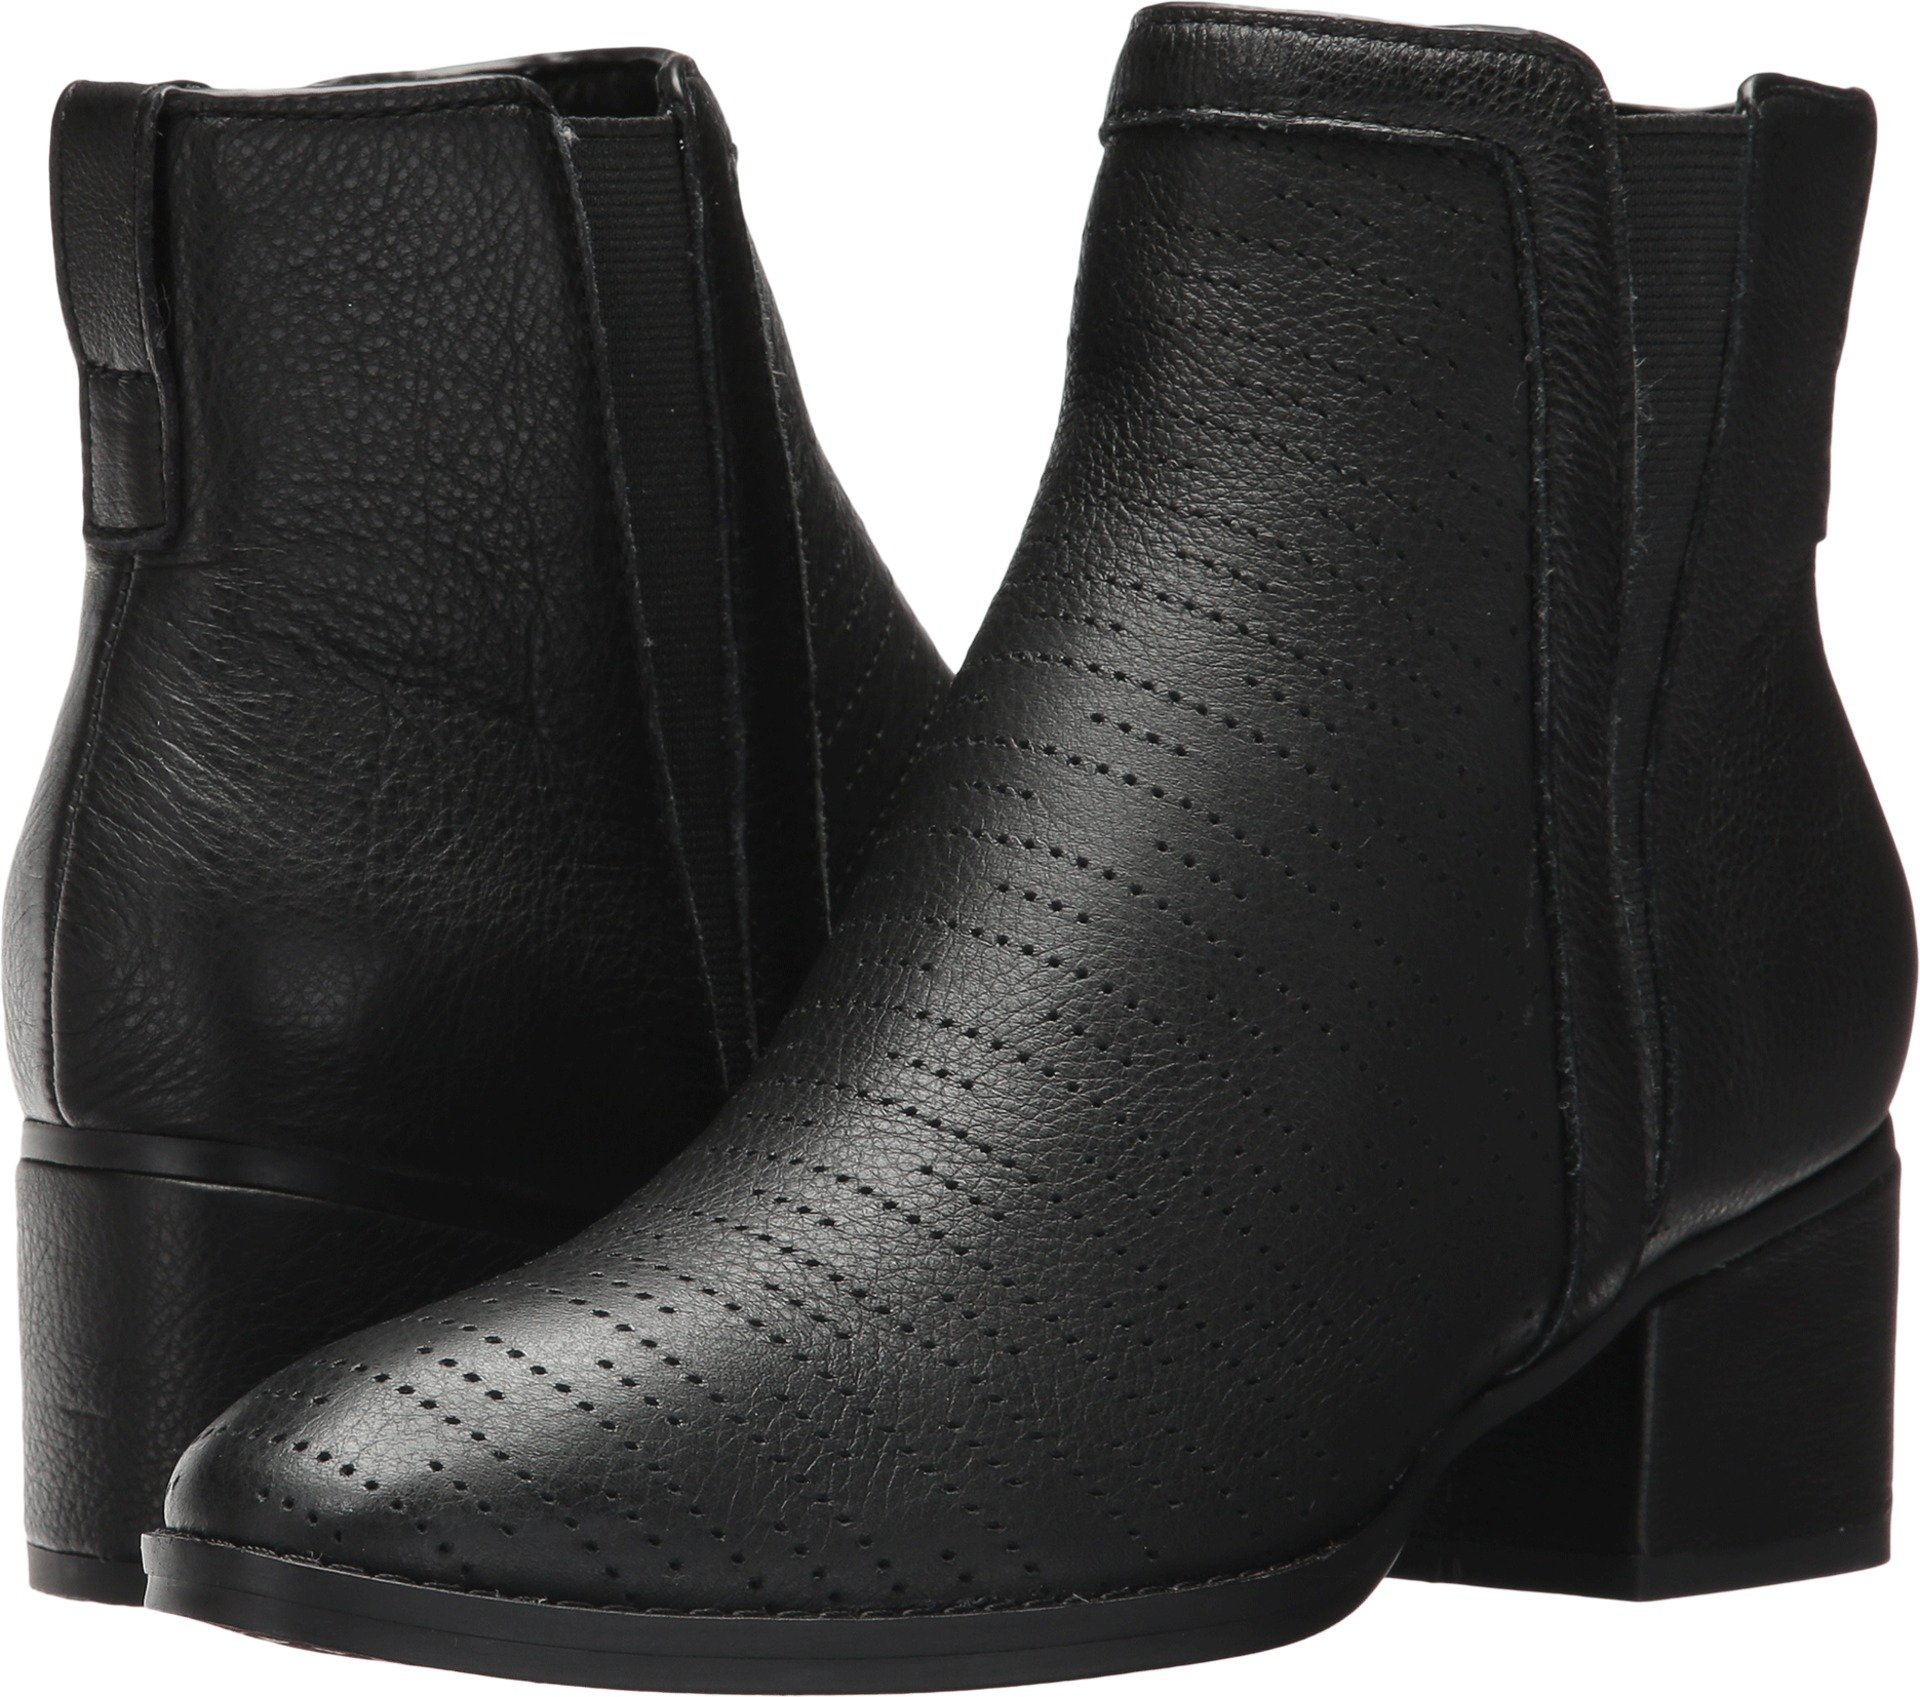 Splendid Women's Rosalie II Ankle Boot, Black, 8 M US